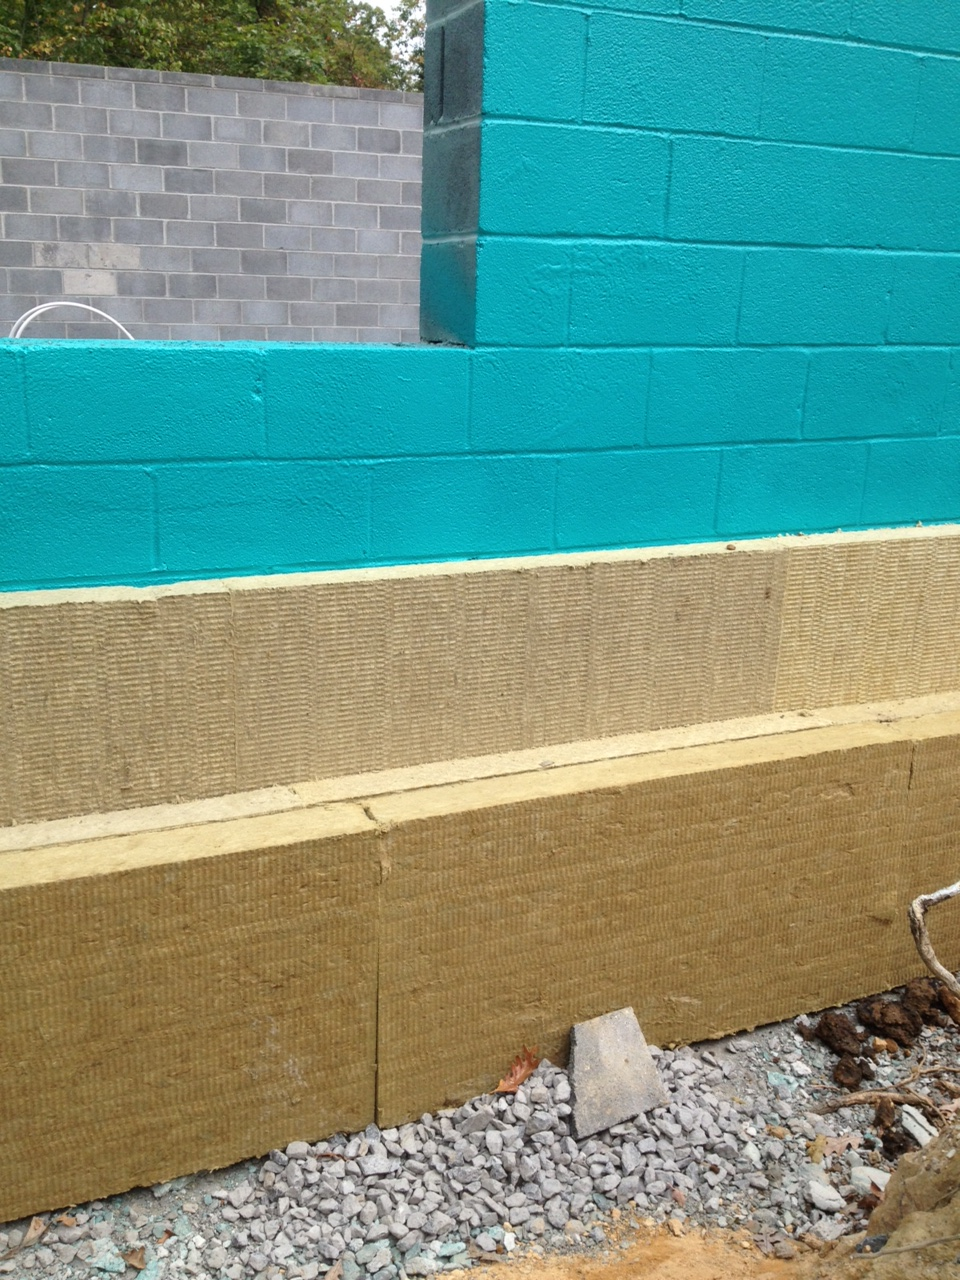 Exterior Insulation - Mineral Wool; Rub-R-Wall waterproofing on concrete block